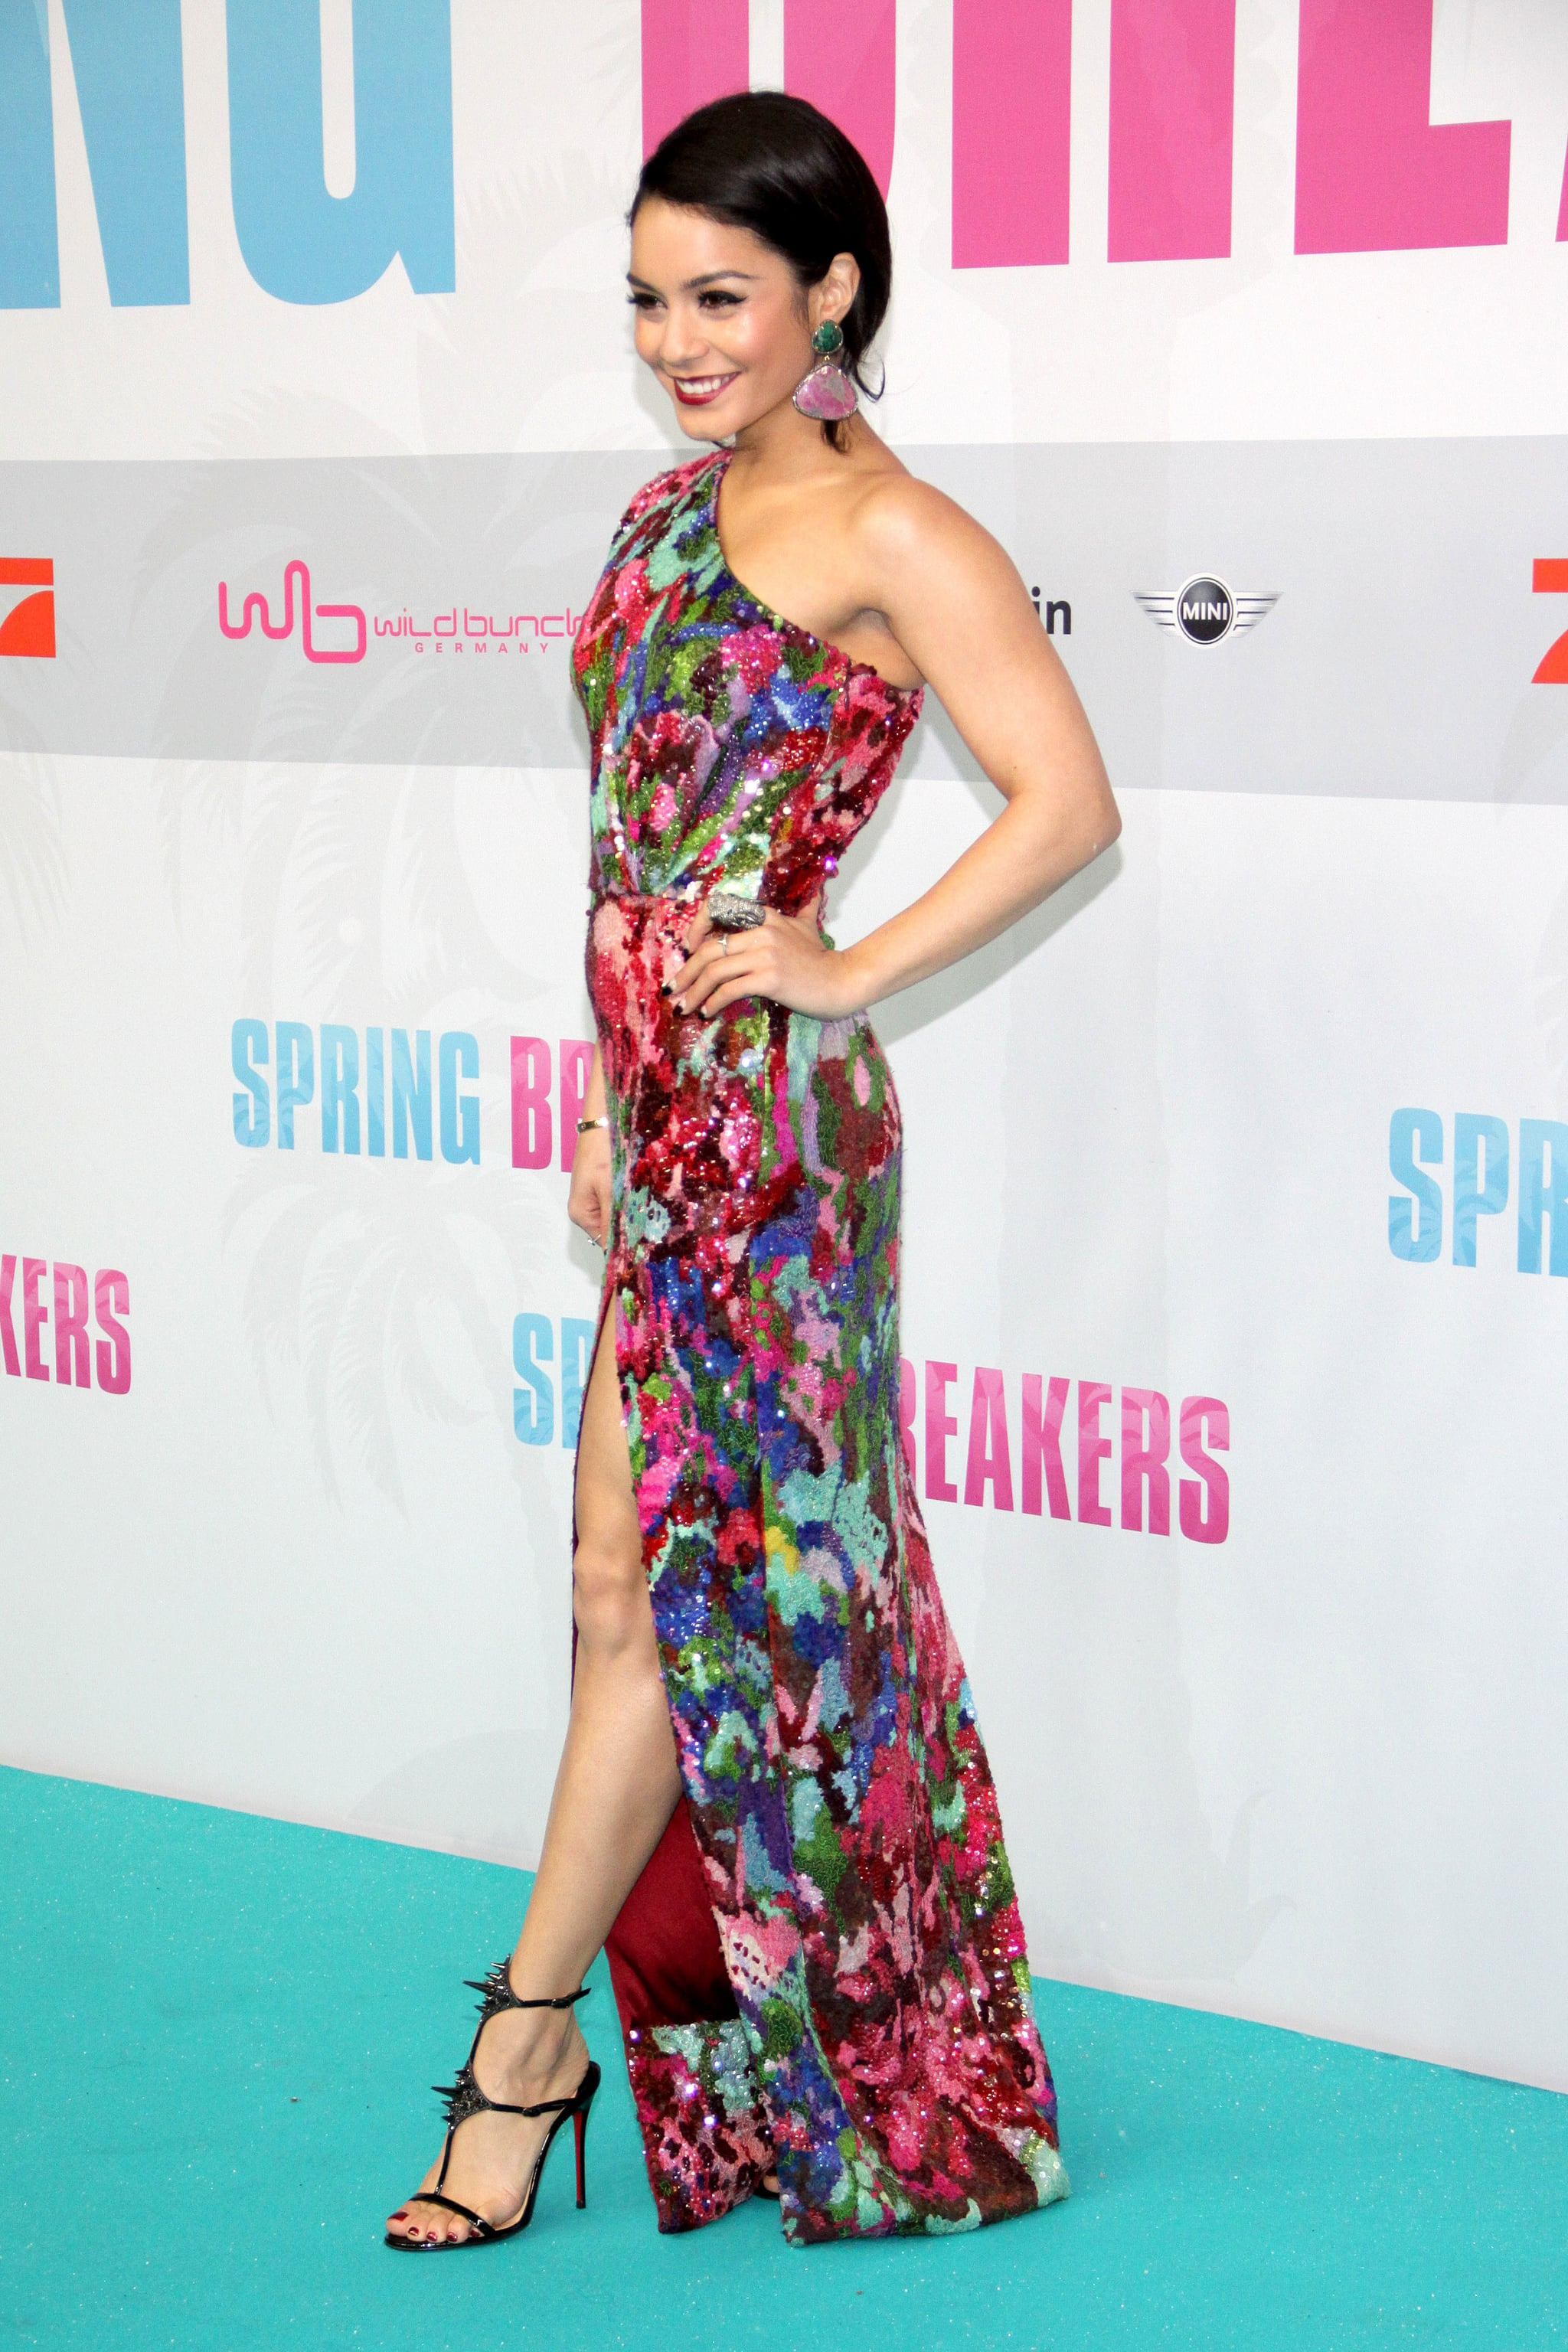 Vanessa Hudgens wore a sequined gown by Naeem Khan.